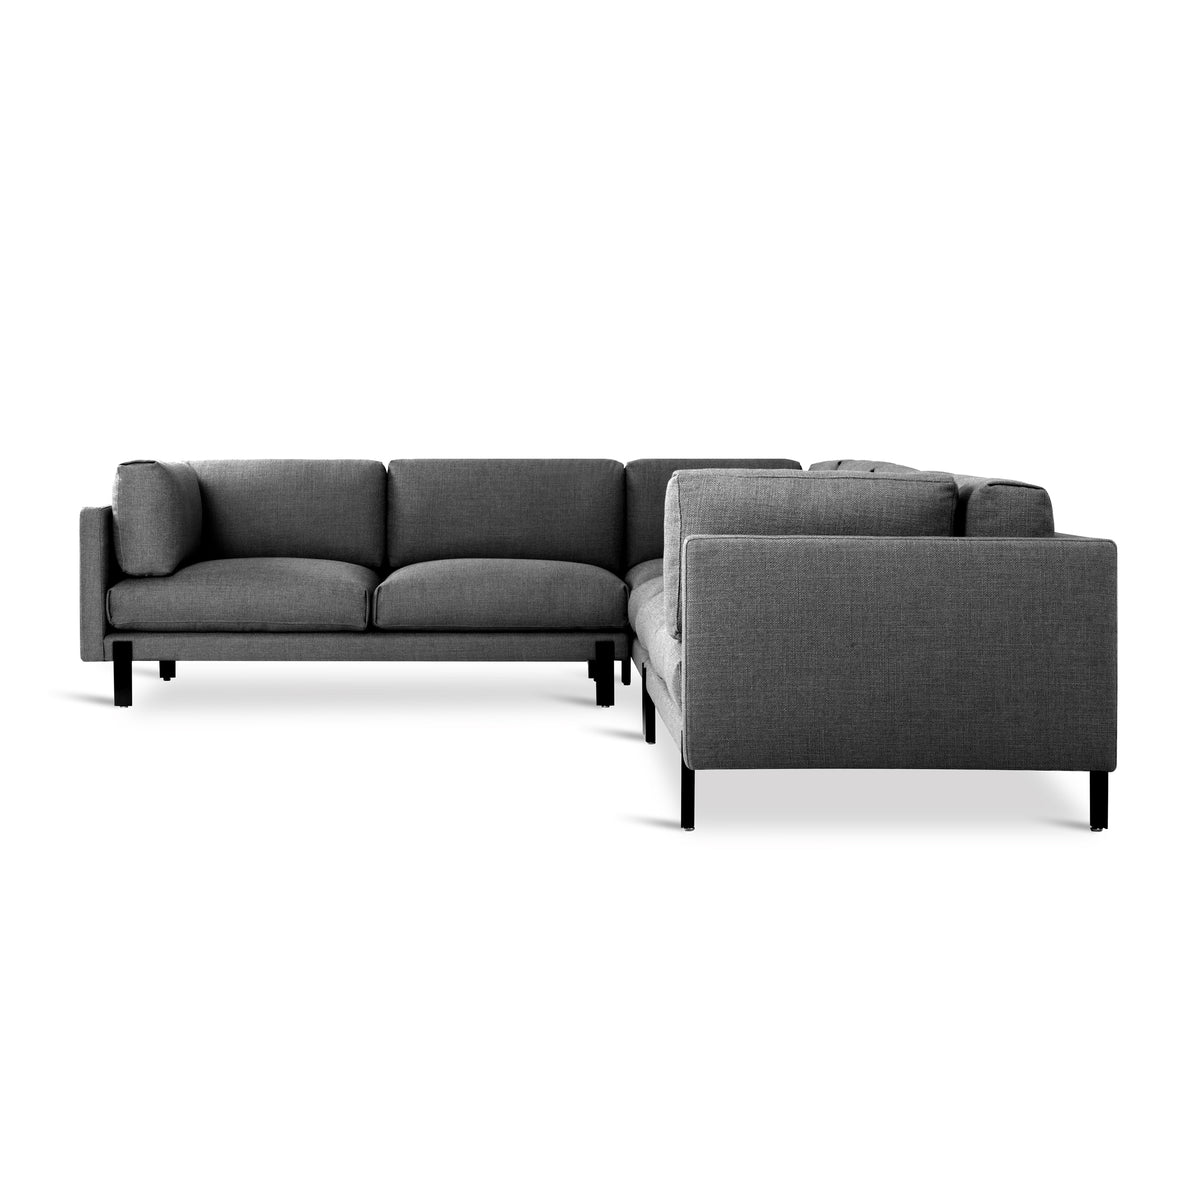 Silverlake XL Sectional - Left Facing